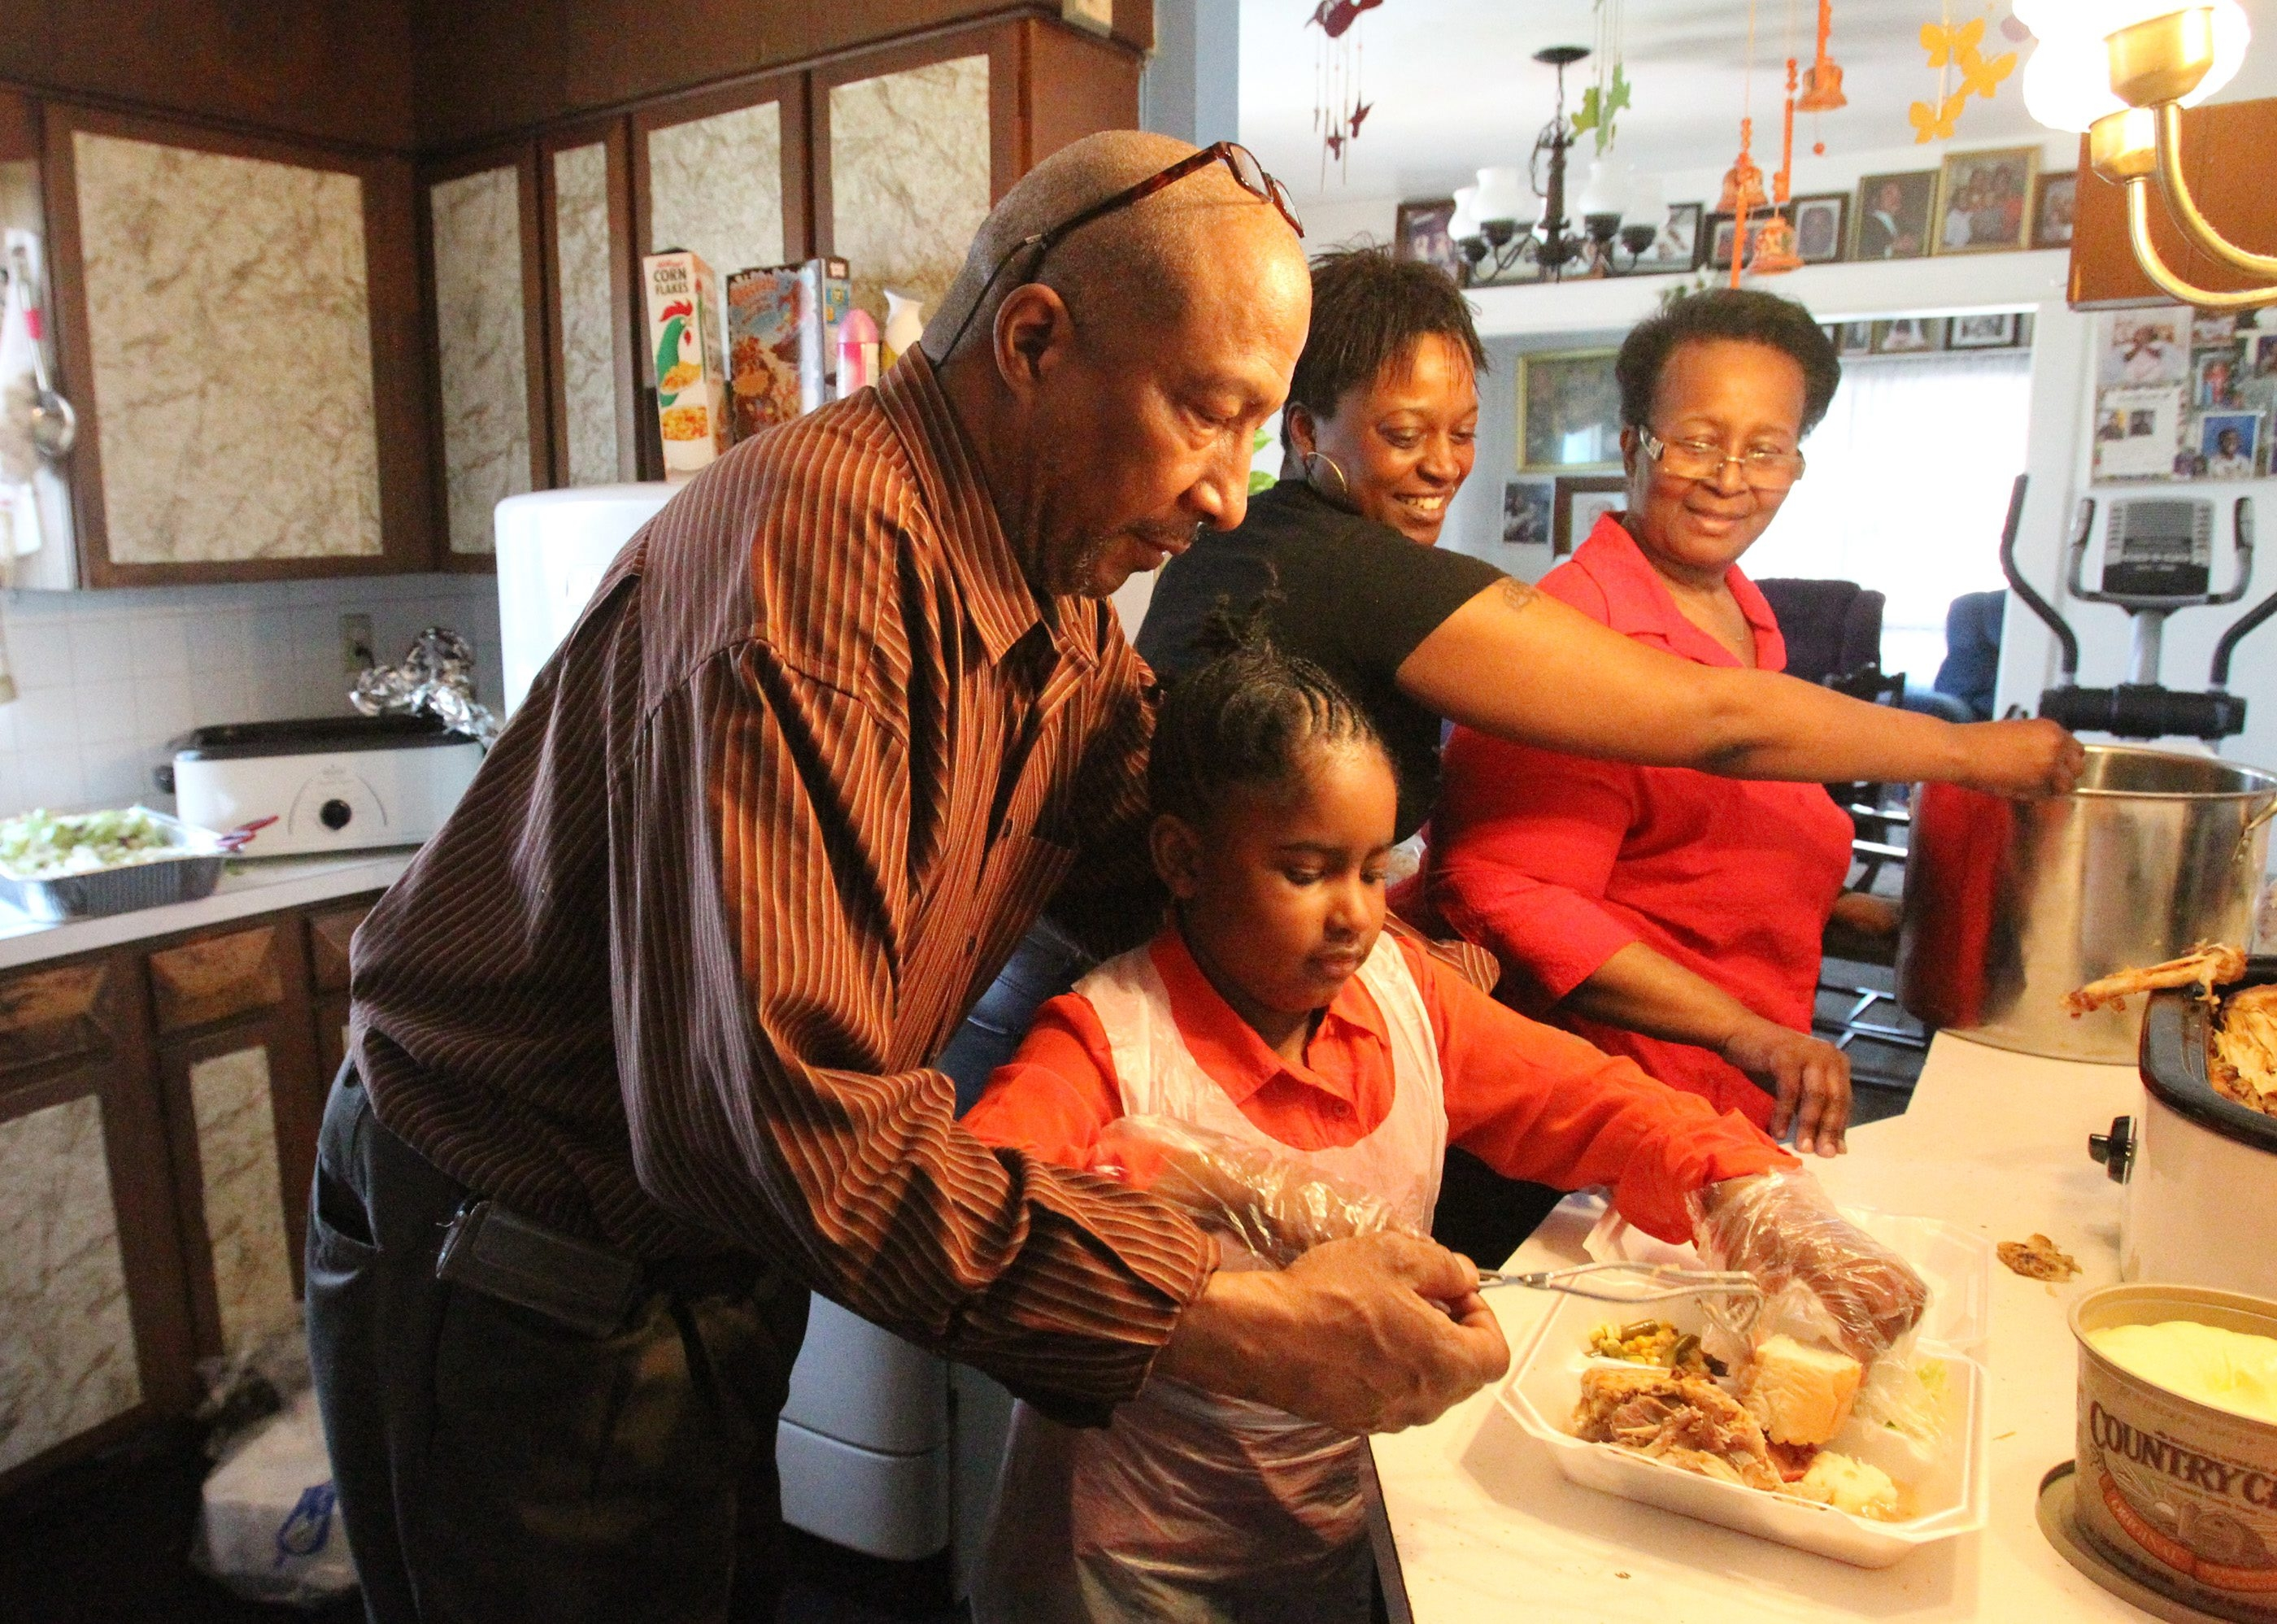 Matthew Davis and his granddaughter, Zioanna Carter, his daughter, Tishnell Davis, and his wife, Yvonne Davis, prepare Easter dinner for the needy in Niagara Falls.